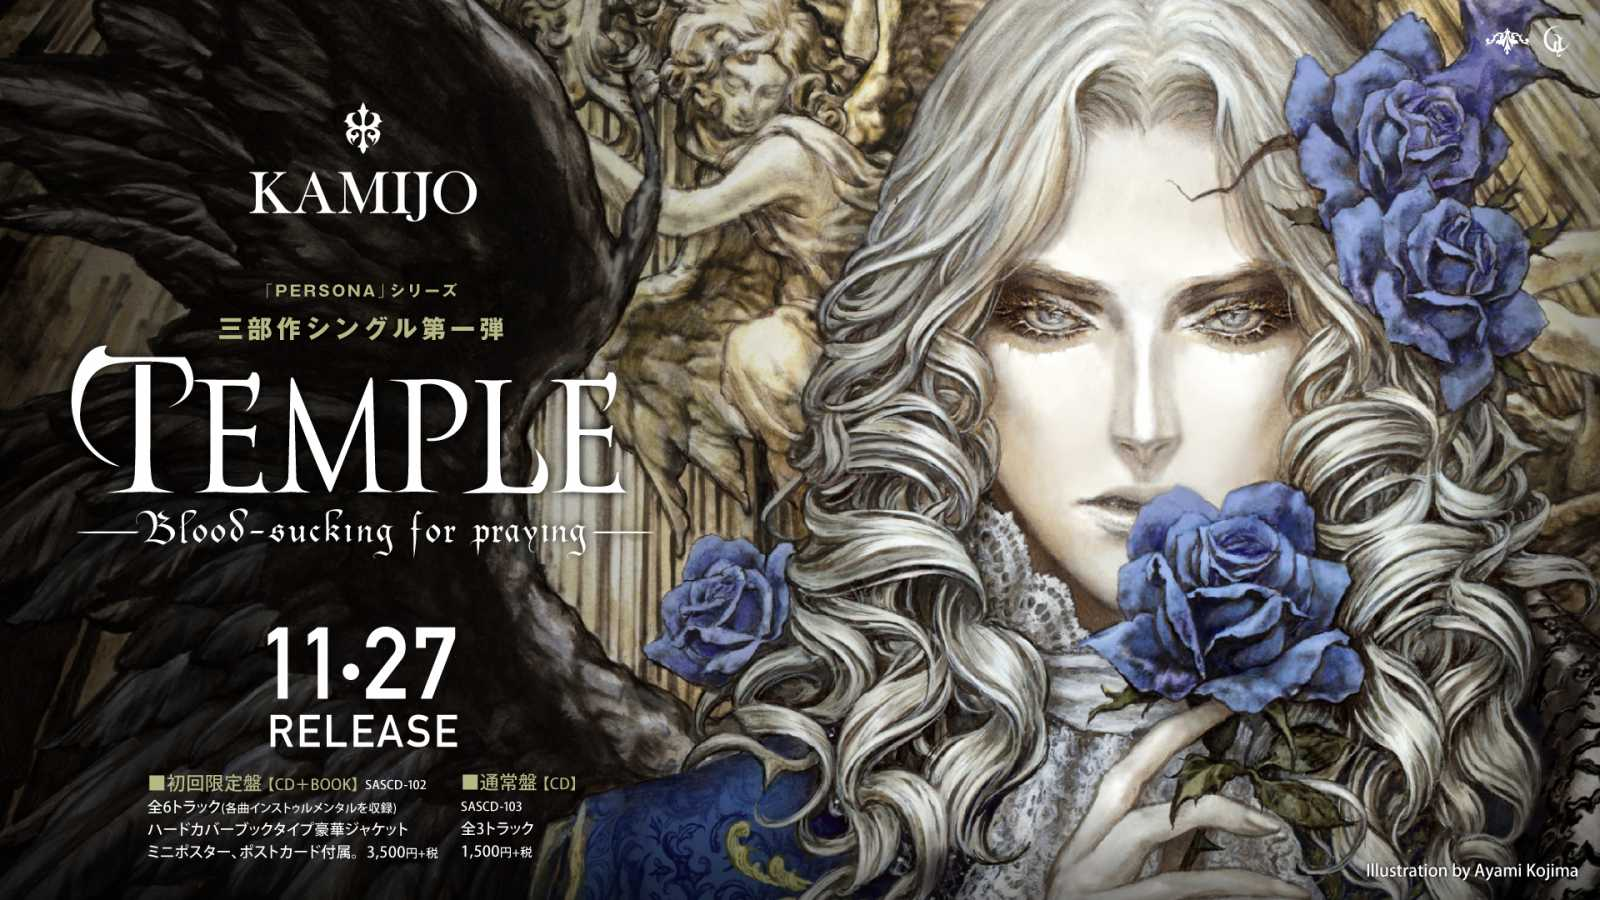 Nuevo single de KAMIJO © CHATEAU AGENCY CO., Ltd. All rights reserved.